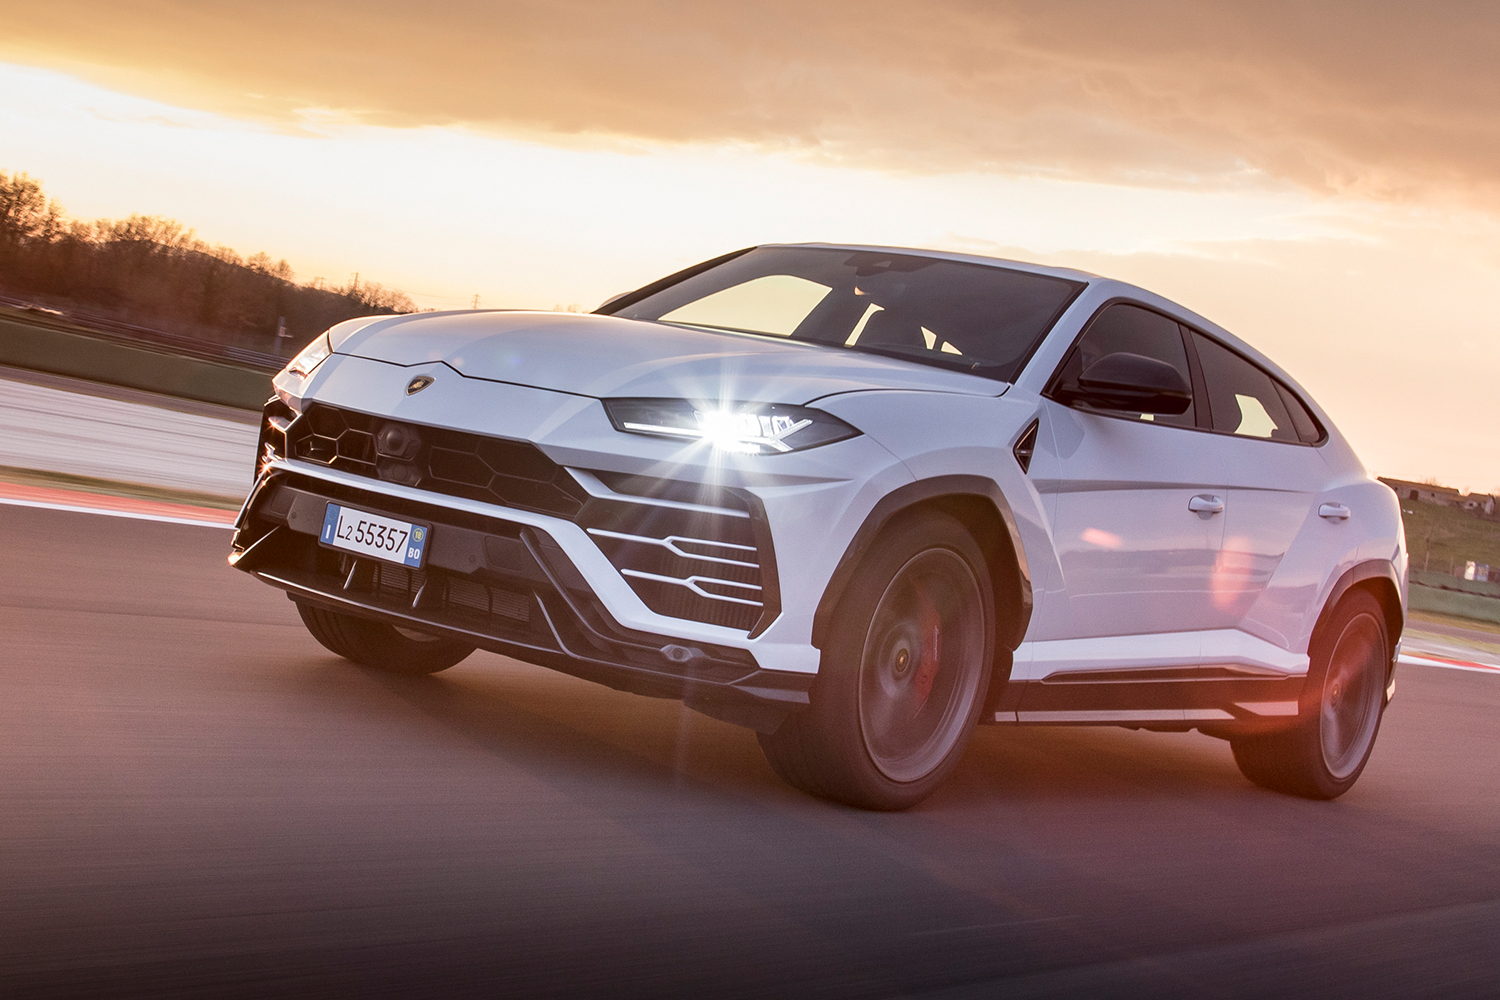 Lamborghini Considers Limiting Car and SUV Production